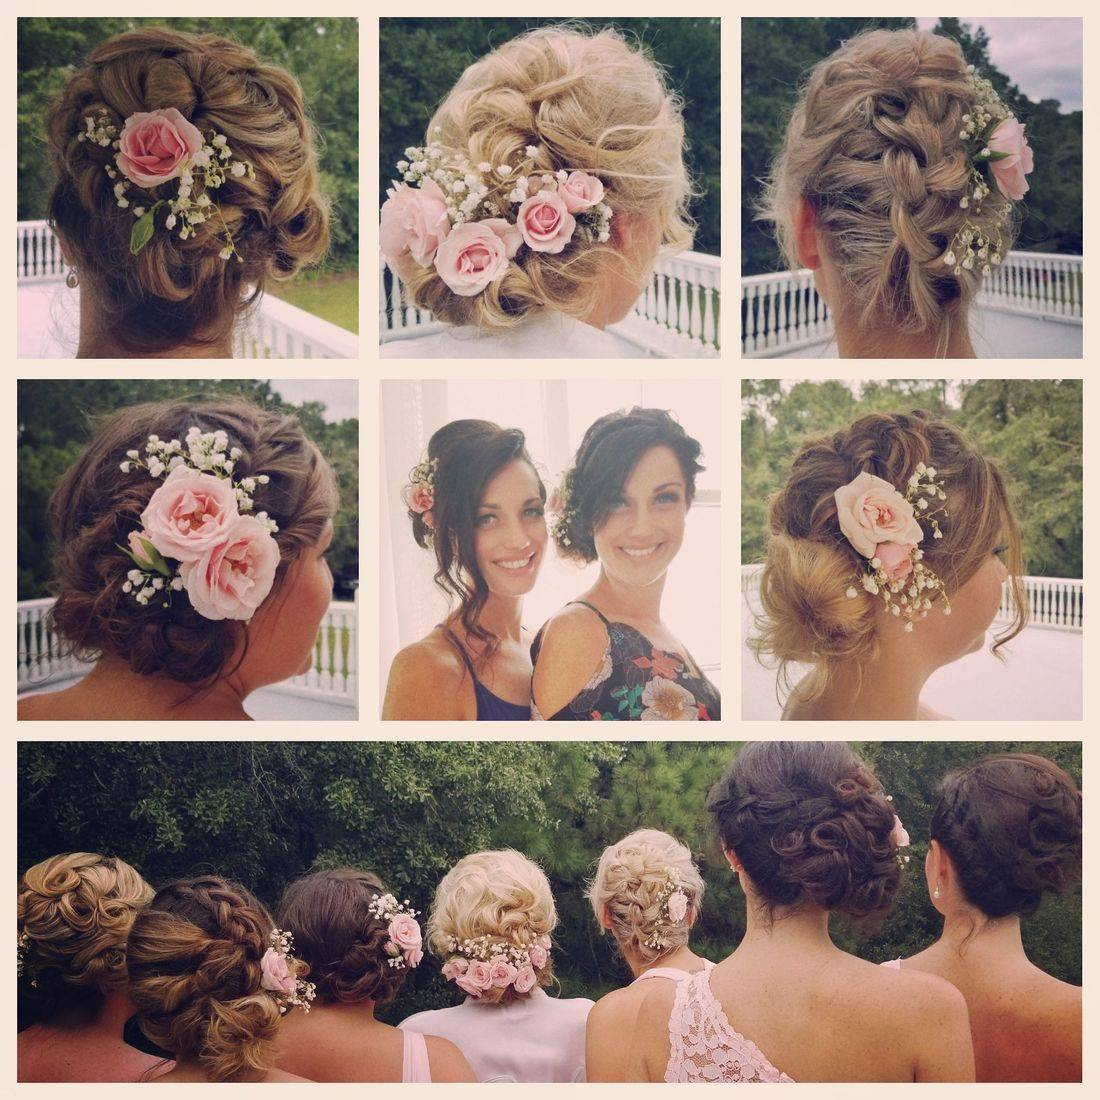 Hairdreams by dyana, Bridge, bride, laura, flowers, wedding, updo, braids, charleston bride, bridesmaids, airbrush, tan, lashes, twists, natural bride